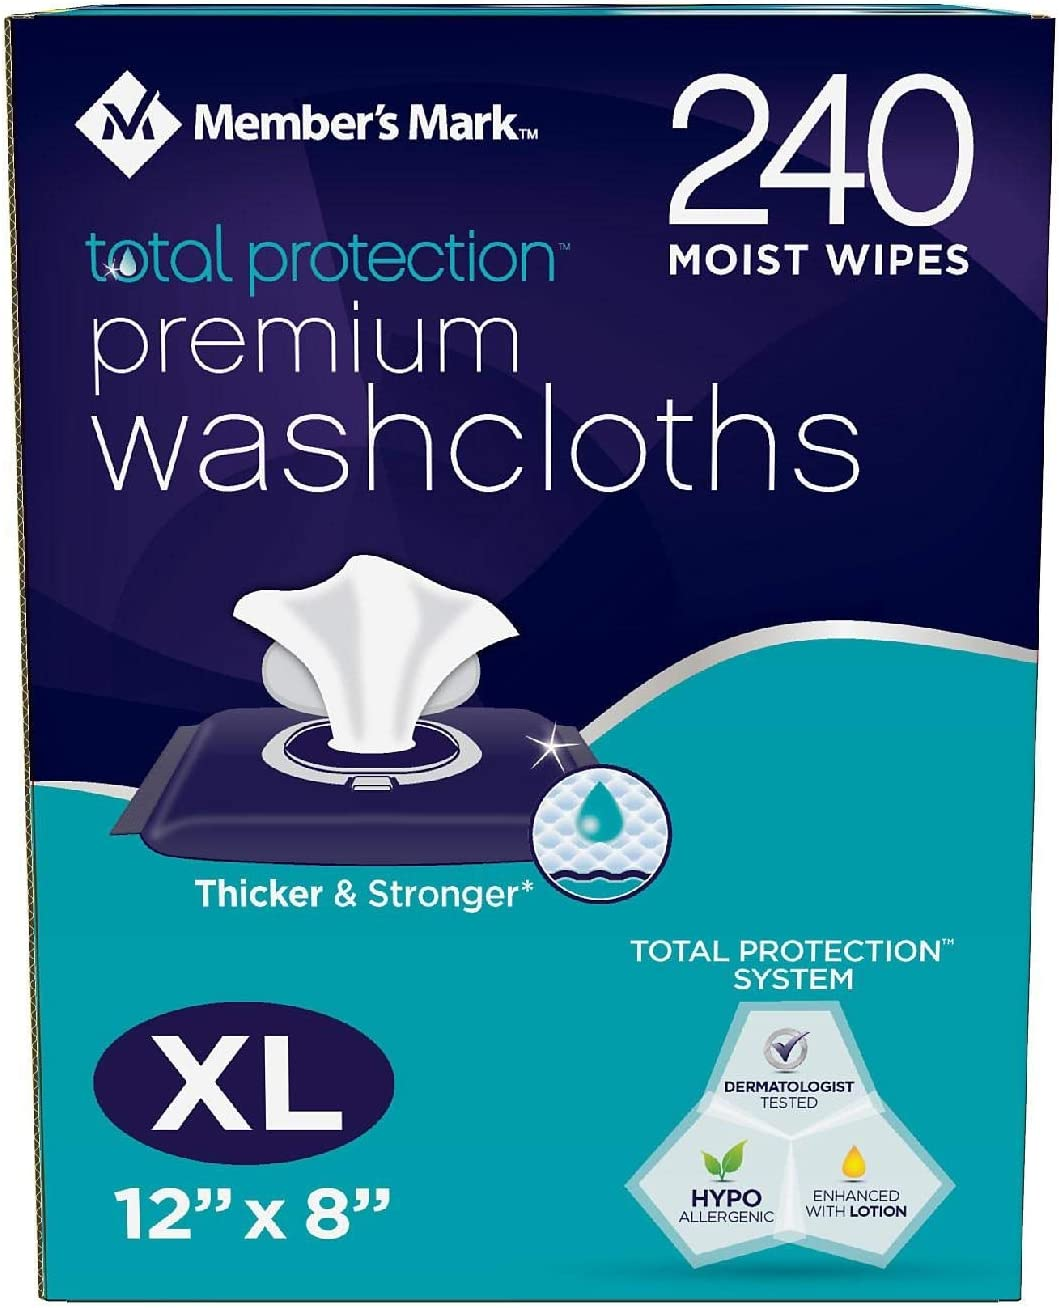 Member's Mark Adult Washcloths (240 ct.) (pack of 2)